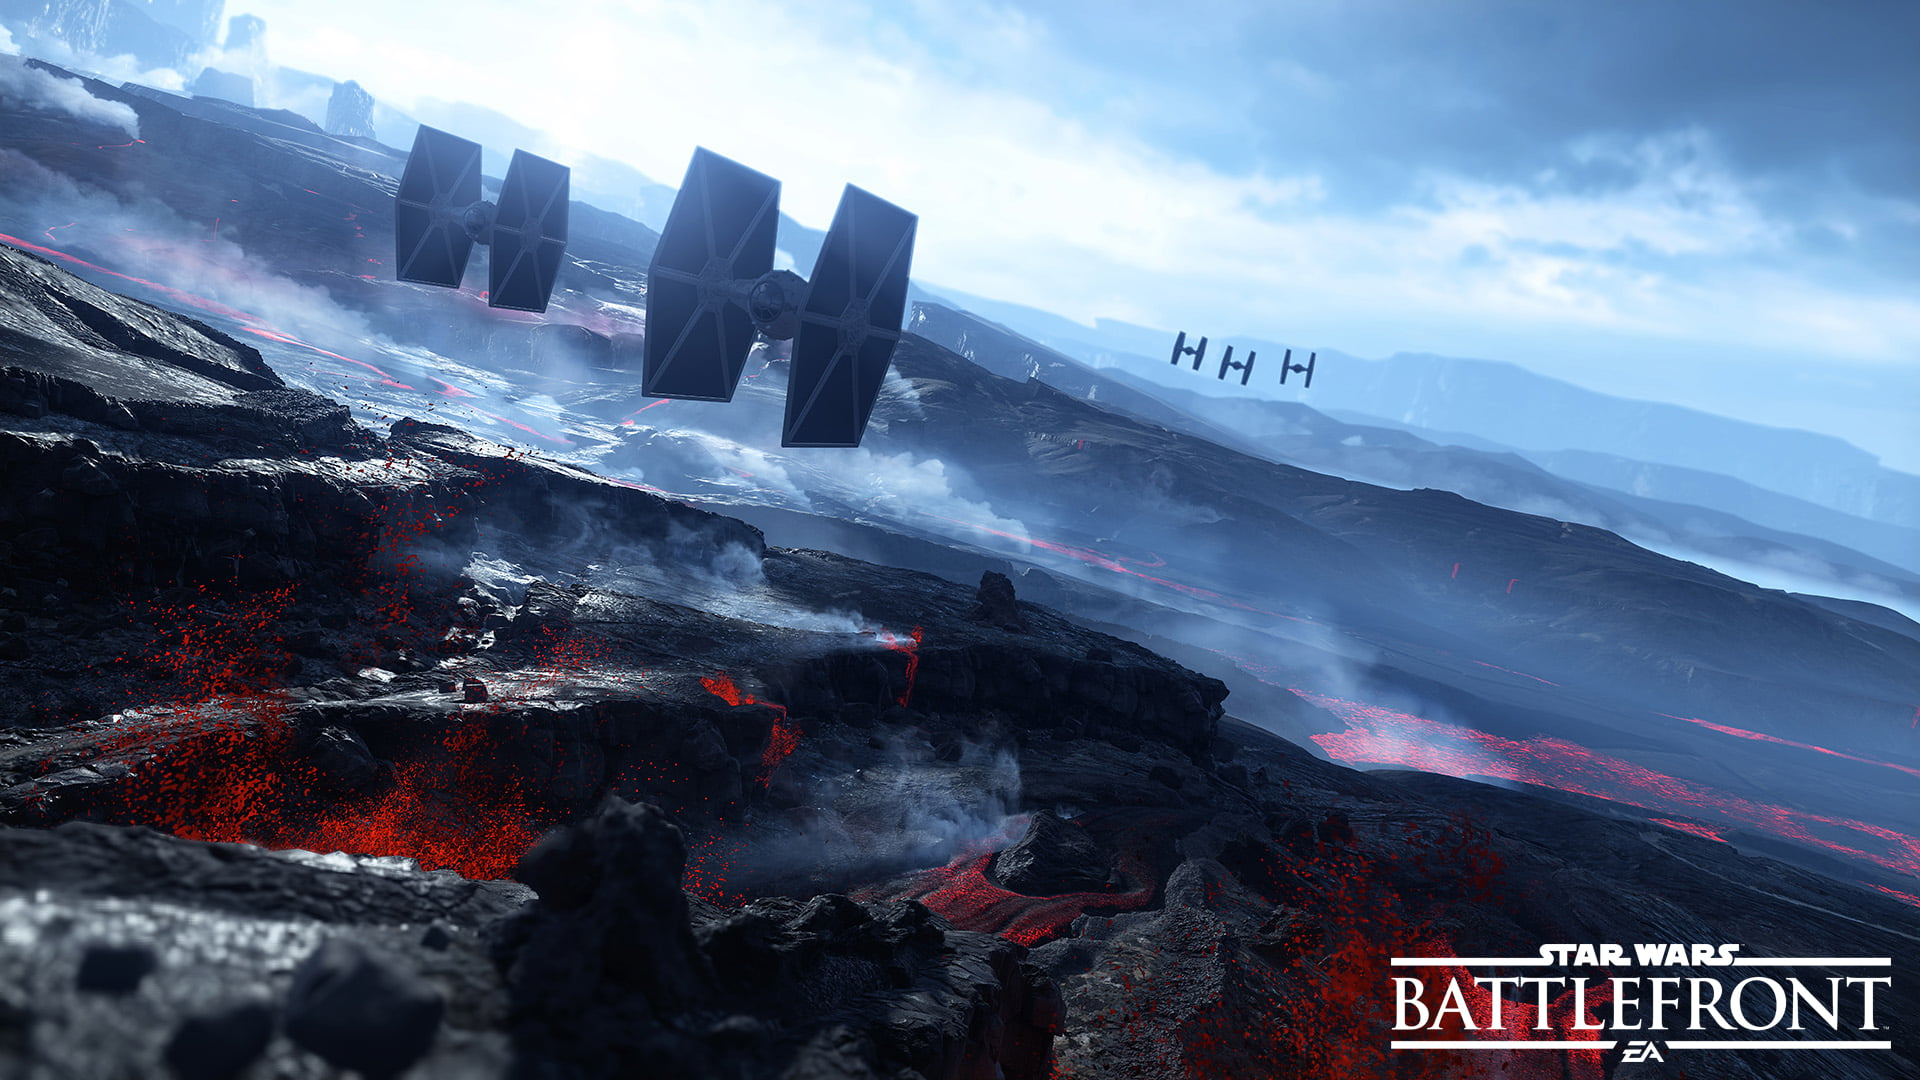 Photo of Star Wars: Battlefront's Sullust Revealed In Screenshots